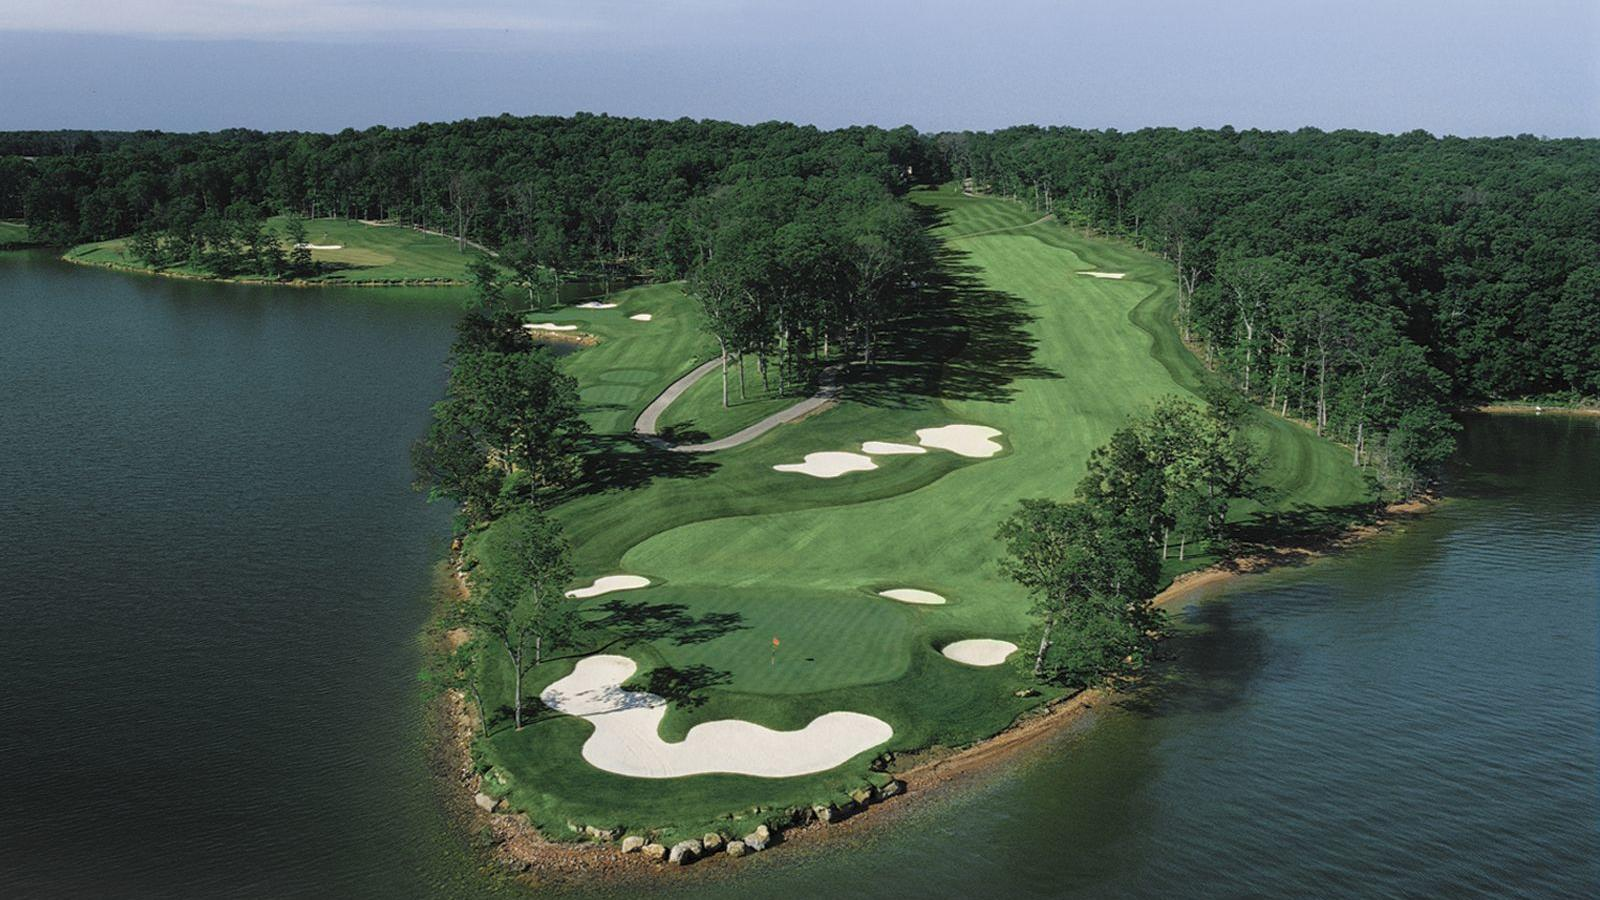 Ozarks Porto Cima Course Still A Gem At 20 Years Old Golf Guide Stltoday Com